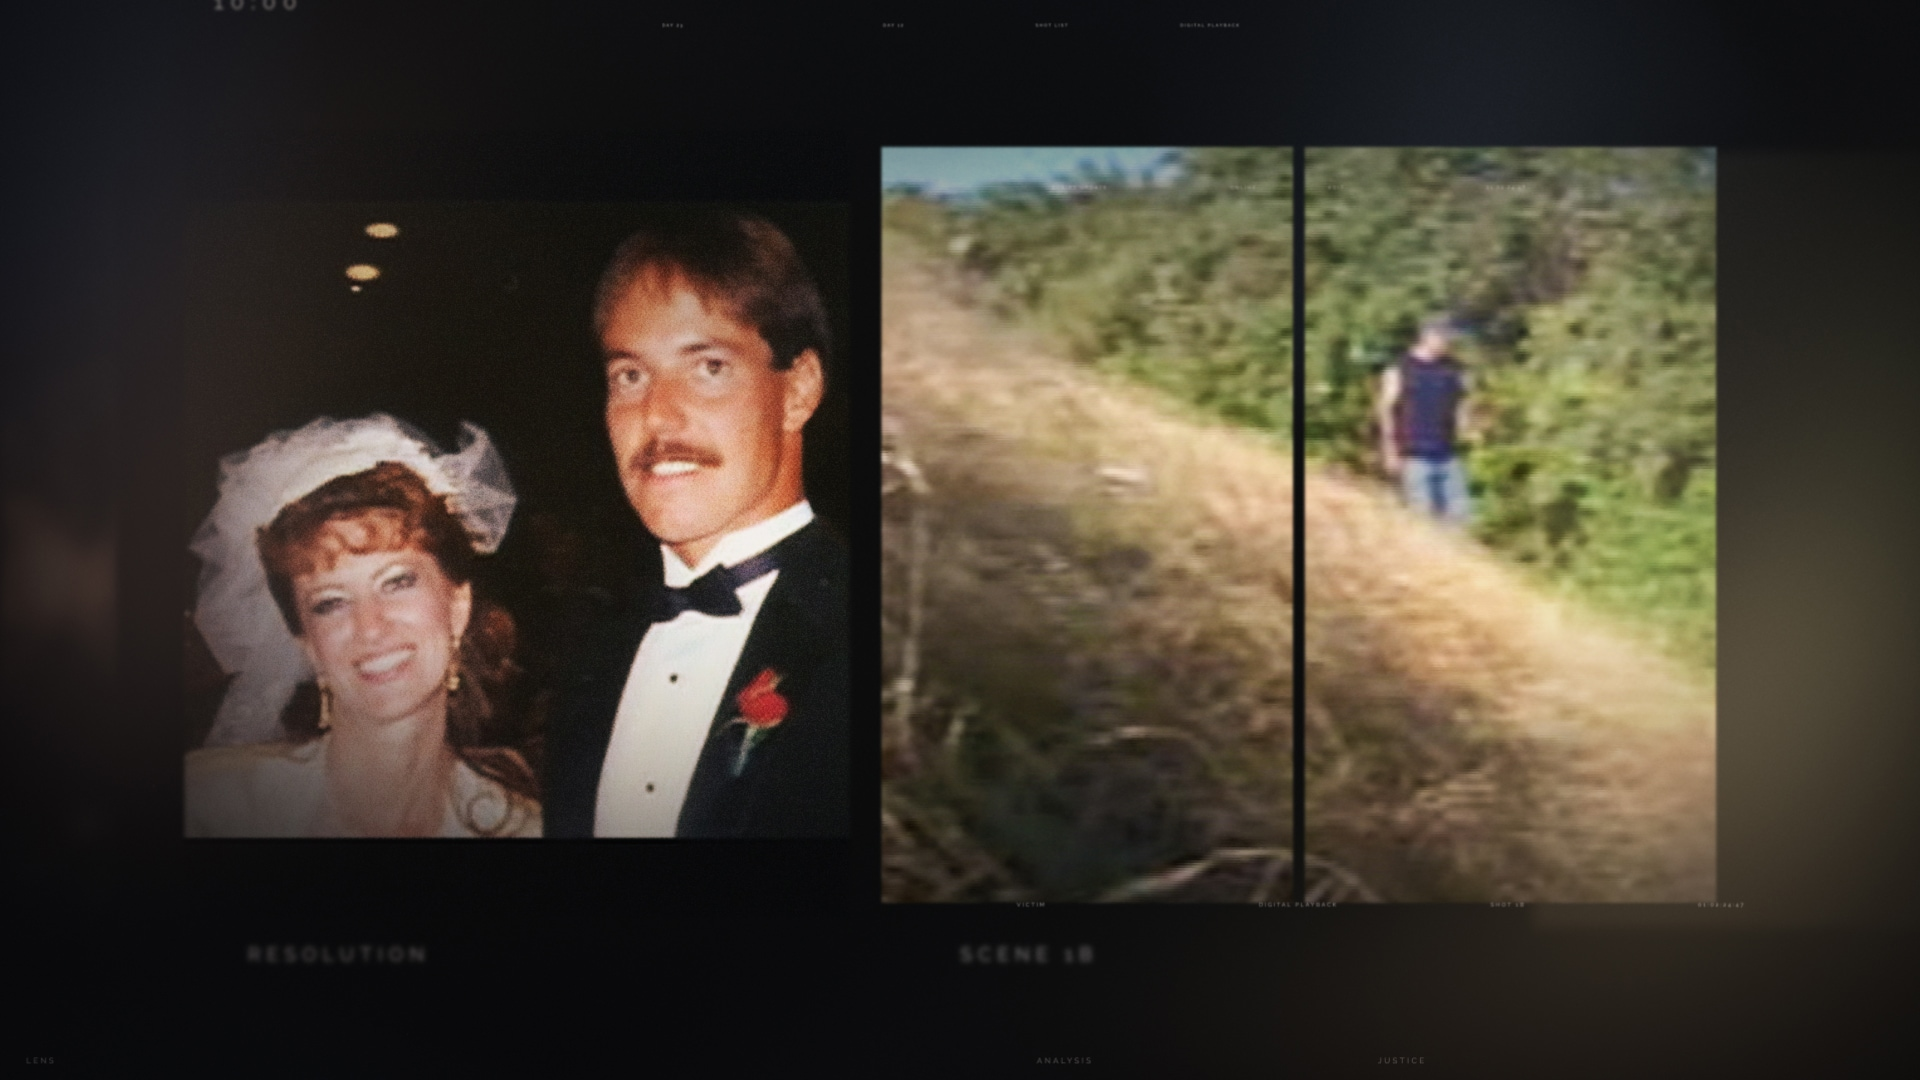 The Disappearance of Debbie Hawk